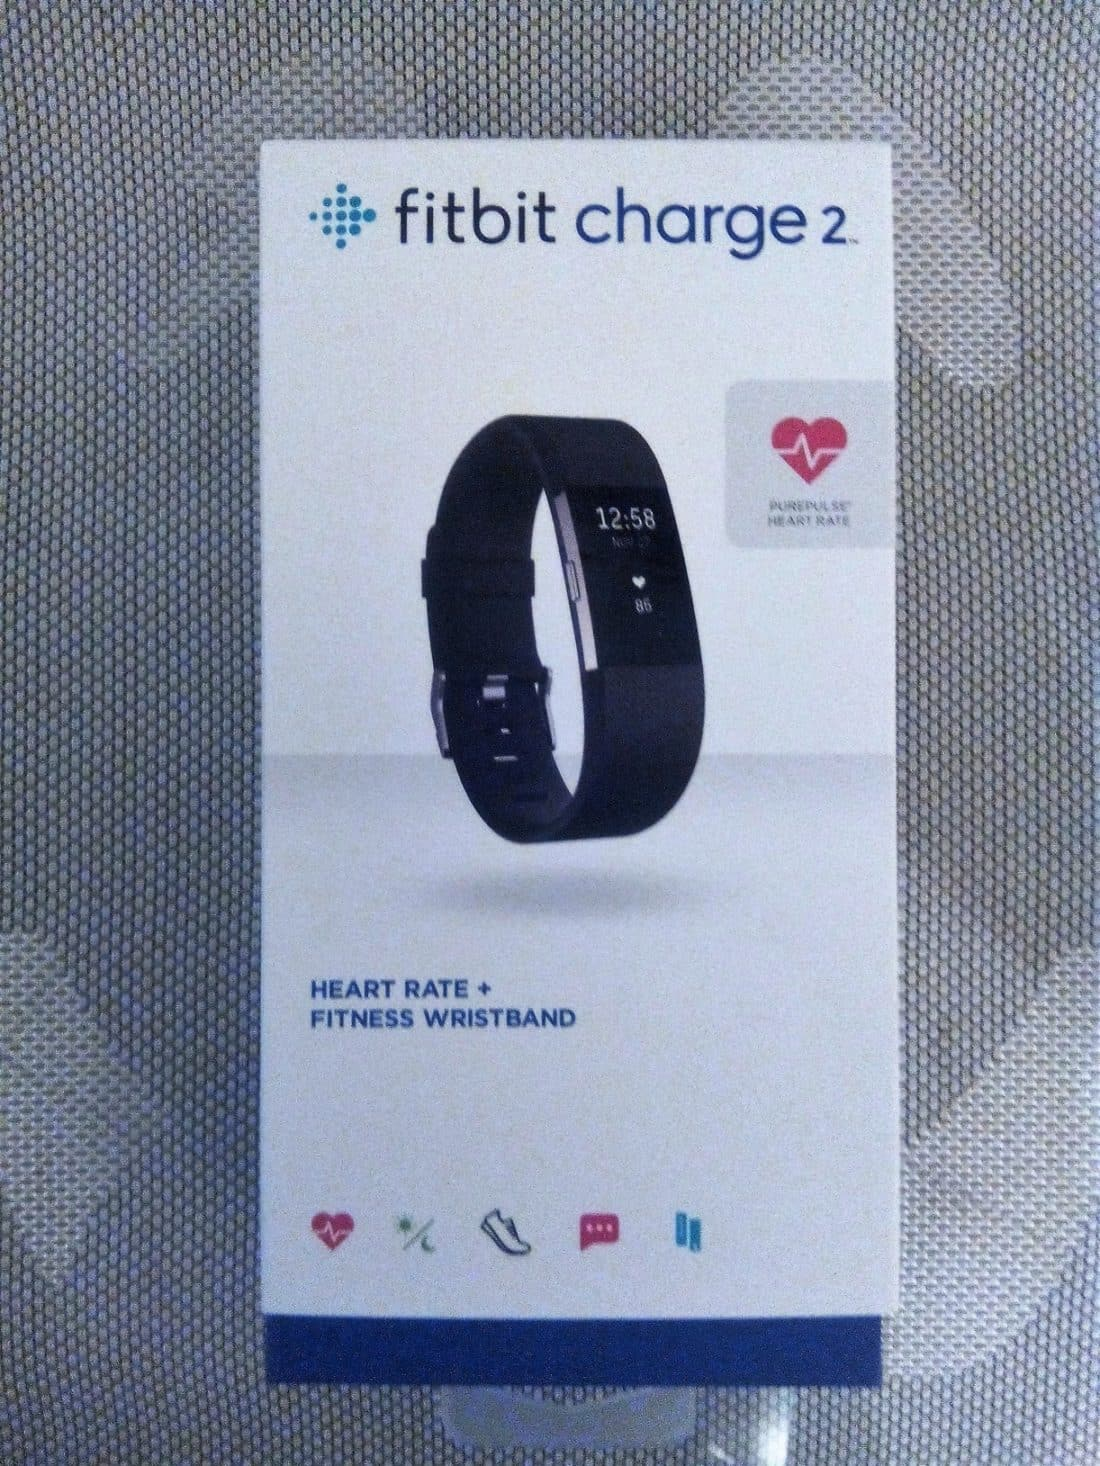 boite fitbit charge 2